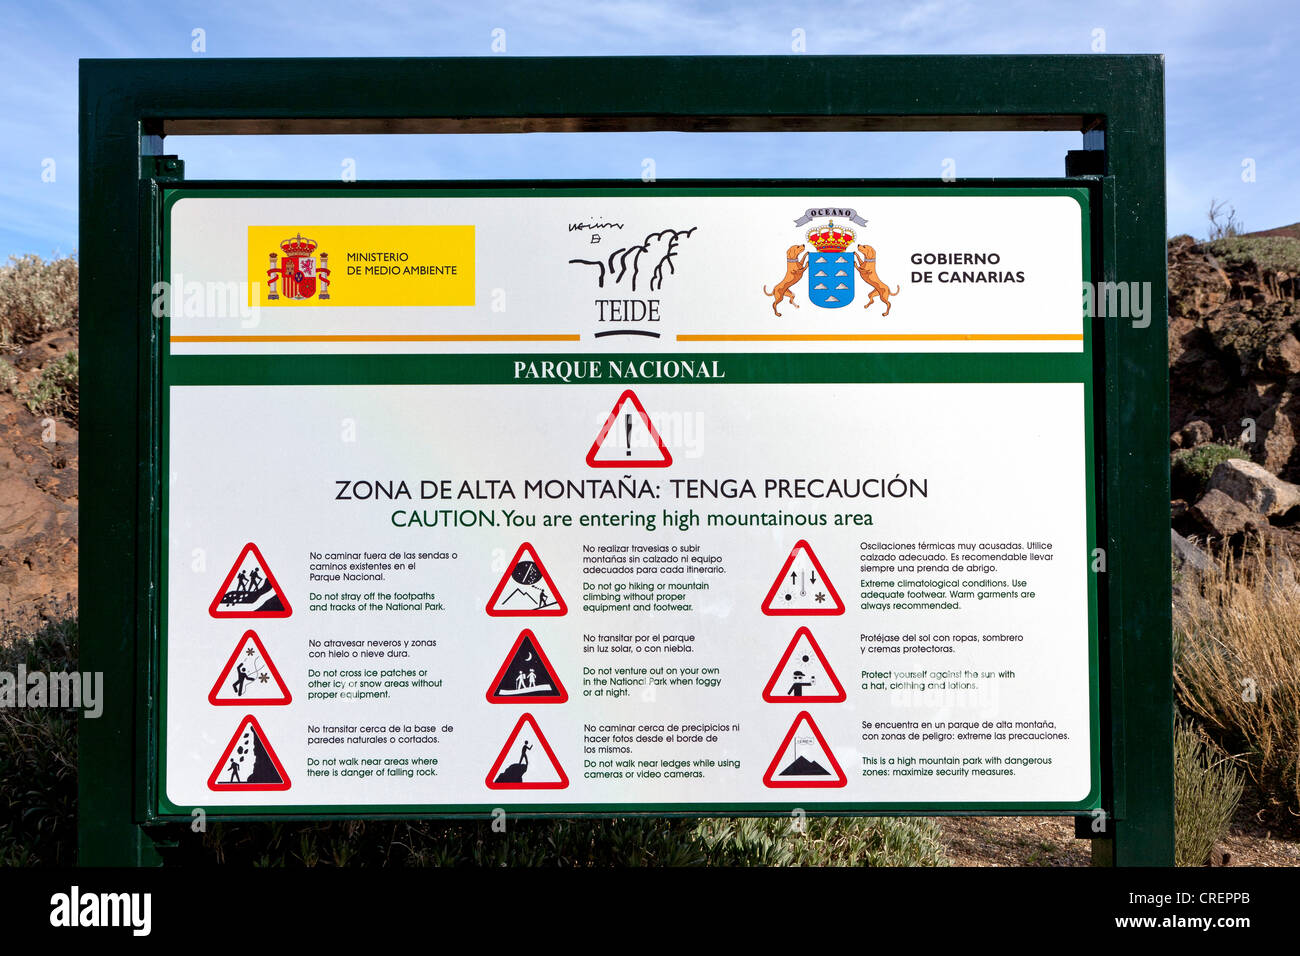 Sign with rules of conduct, Teide National Park, Tenerife, Canary Islands, Spain, Europe - Stock Image